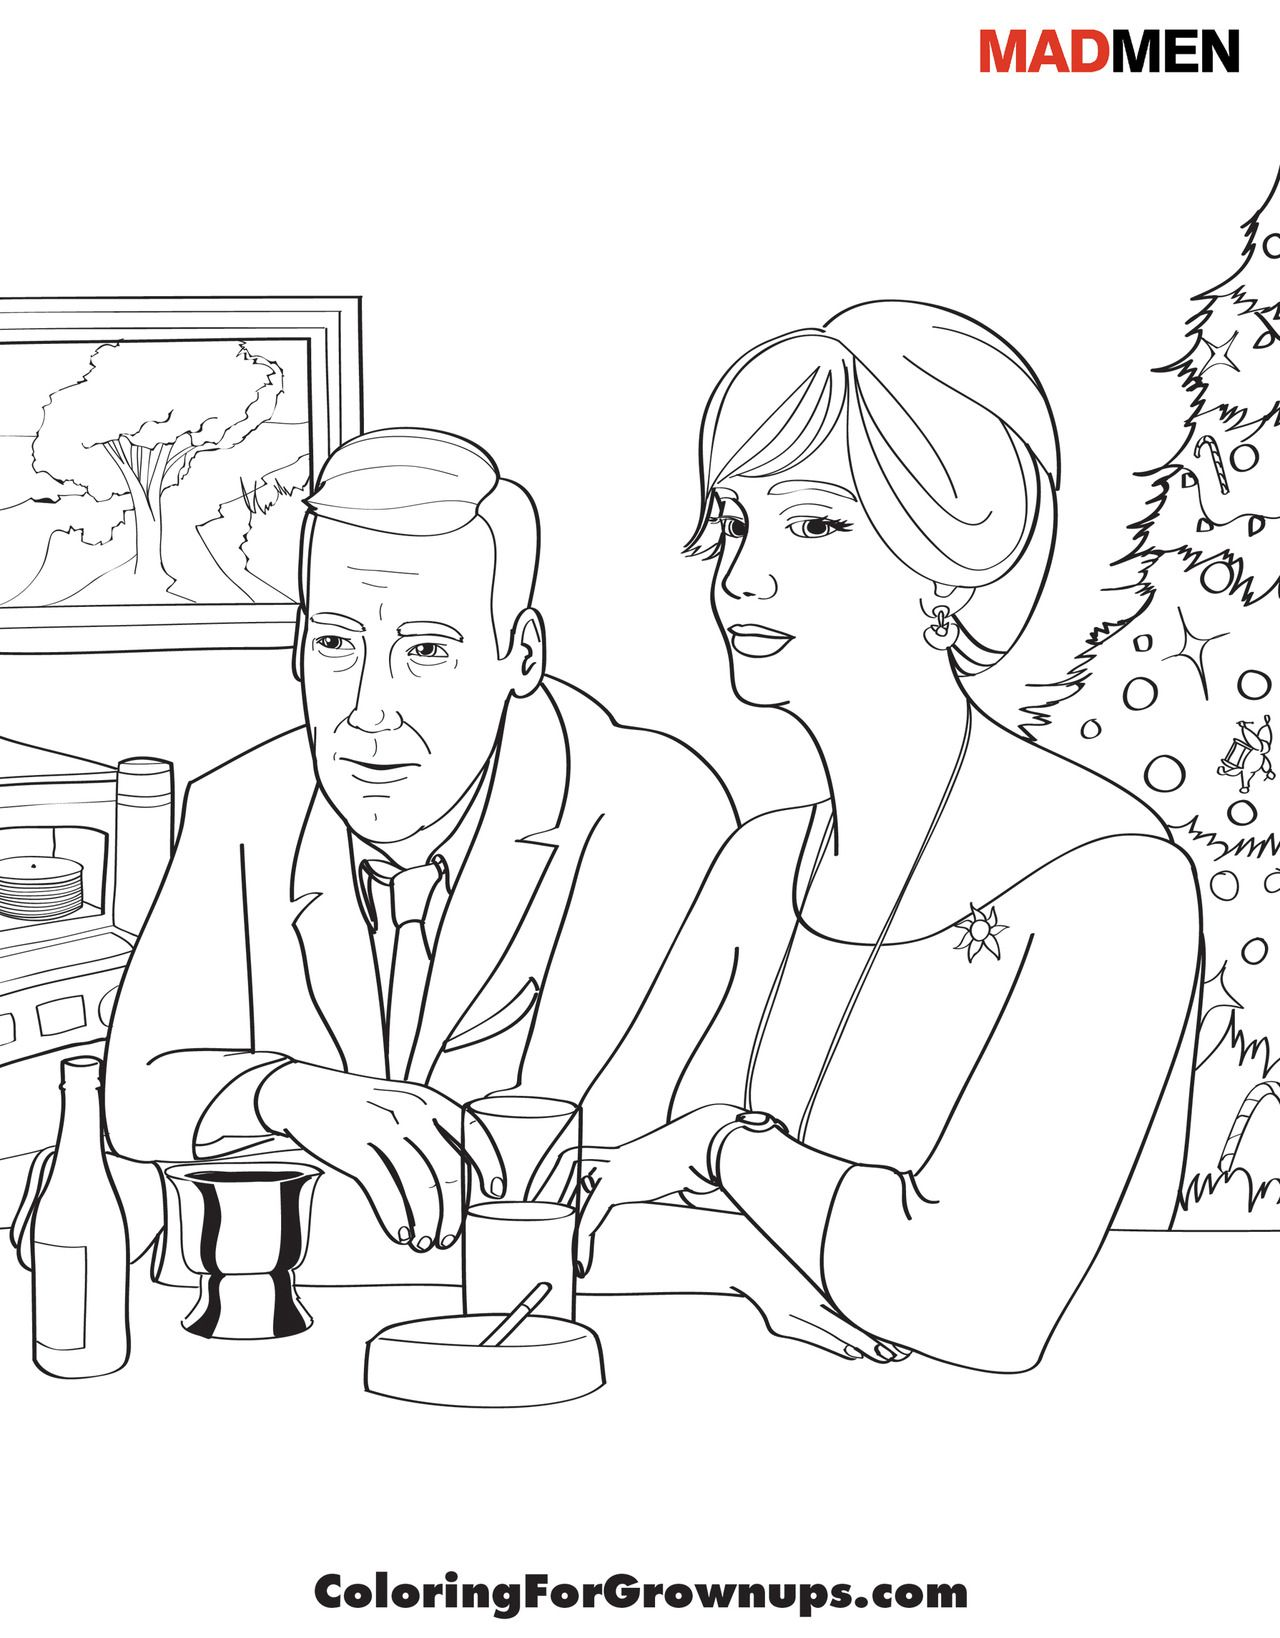 Madmen Coloring Page Coloringforgrownups